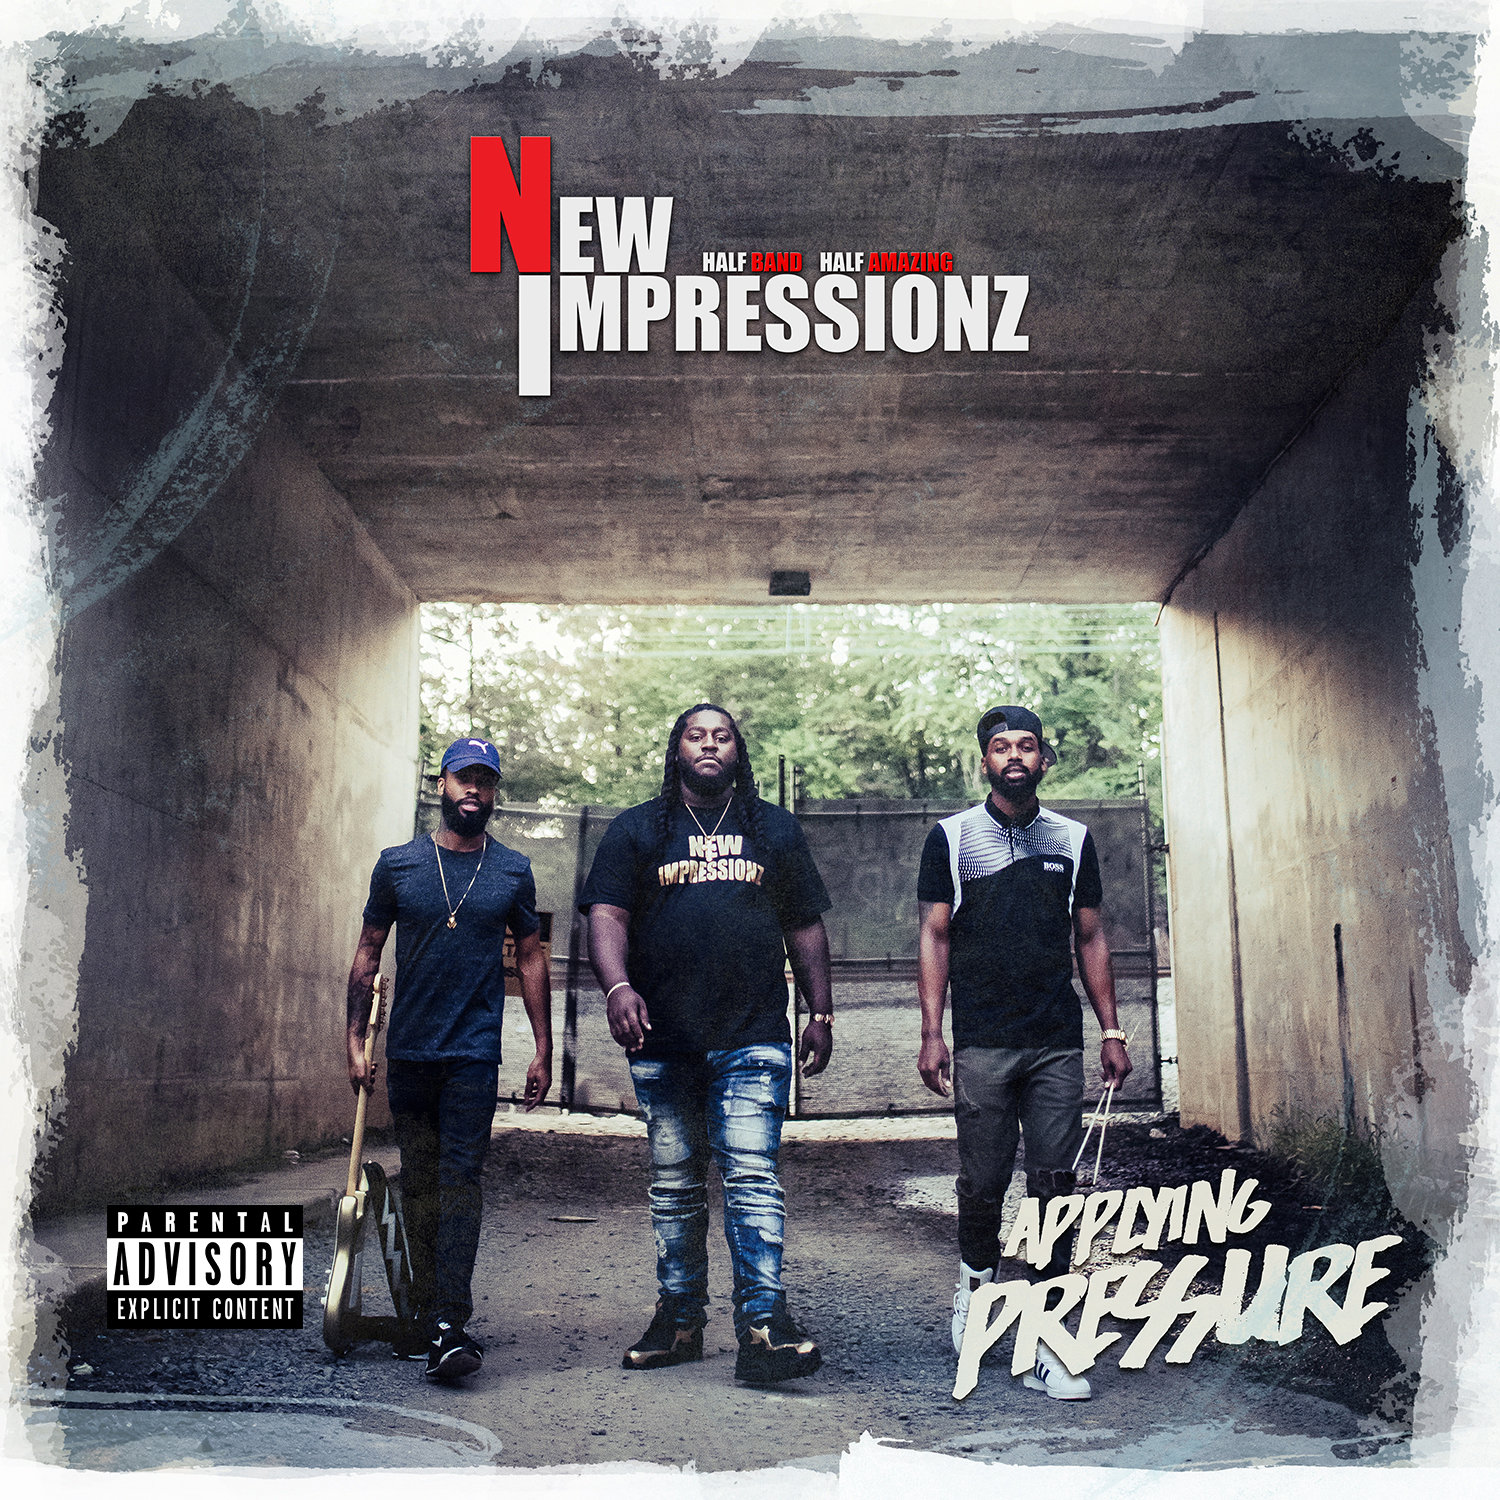 New Impressionz - Applying Pressure - ZIP FILE DOWNLOAD (Must download to a computer)